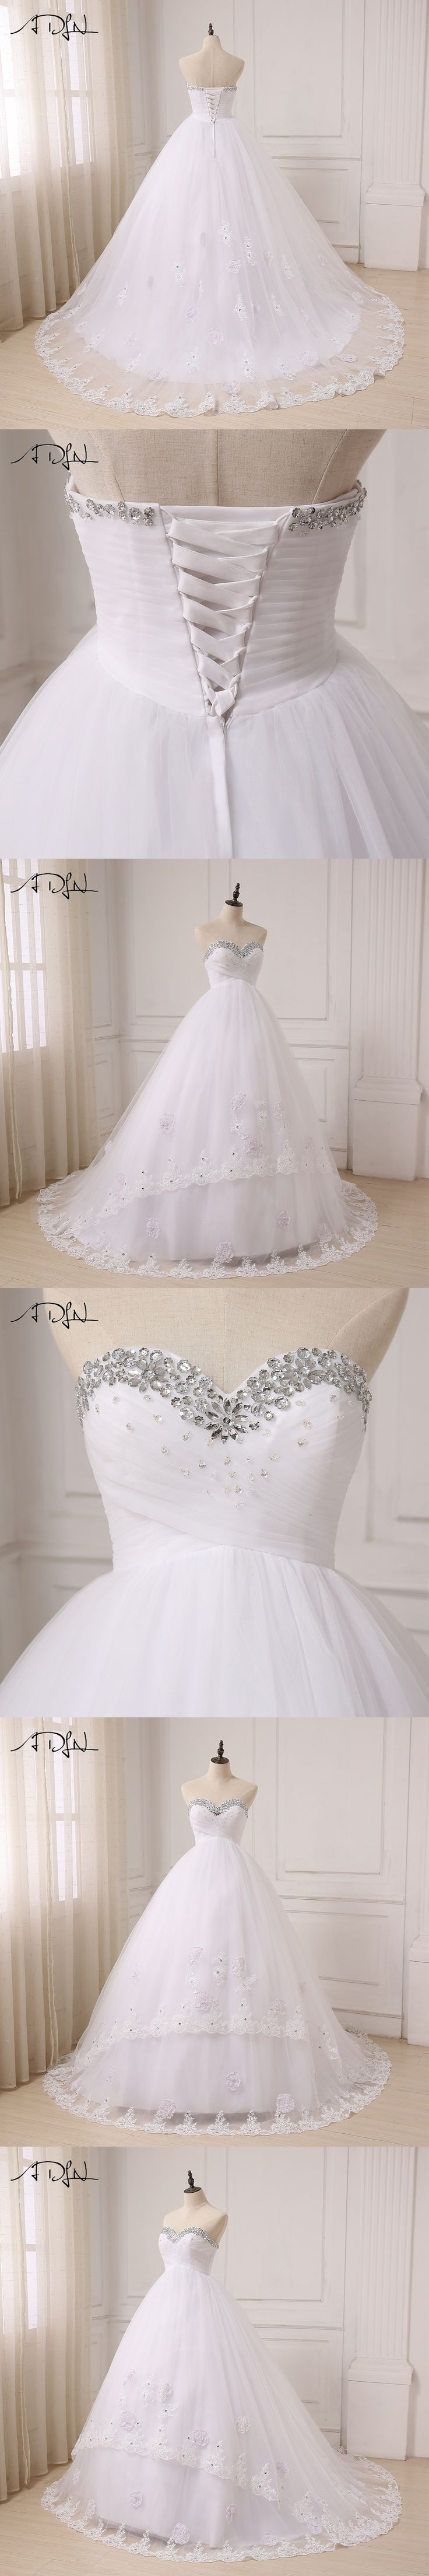 ADLN 2017 Pregnant Ball Gown Wedding Dresses Sweetheart Sleeveless Sweep Train Tulle Bride Wedding Gowns Plus Size